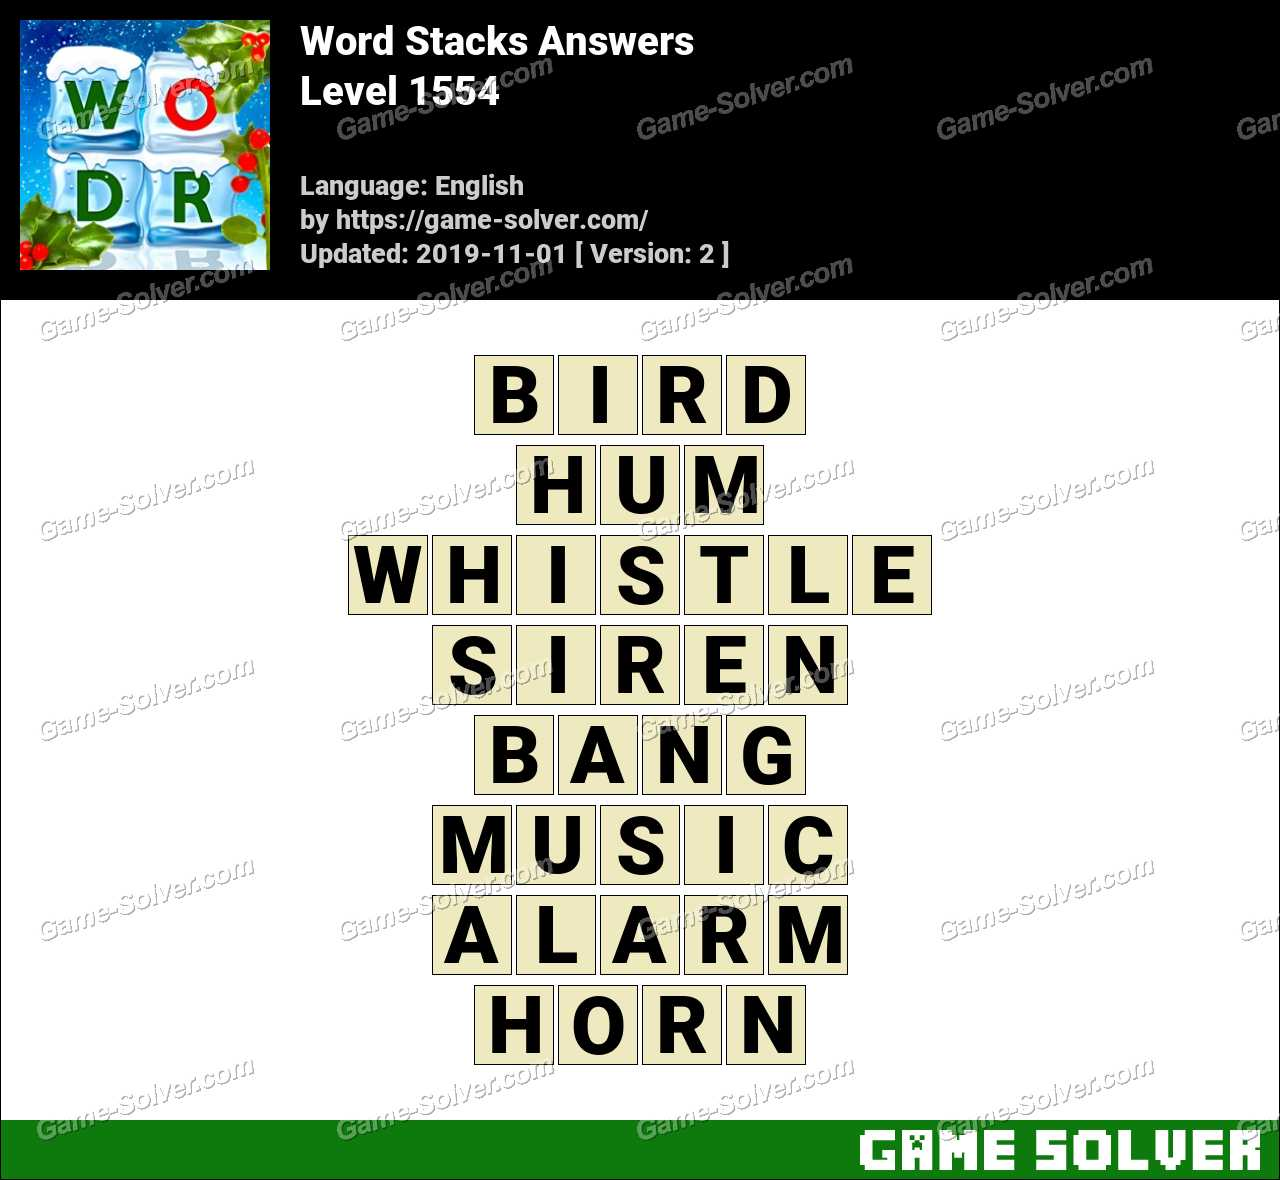 Word Stacks Level 1554 Answers